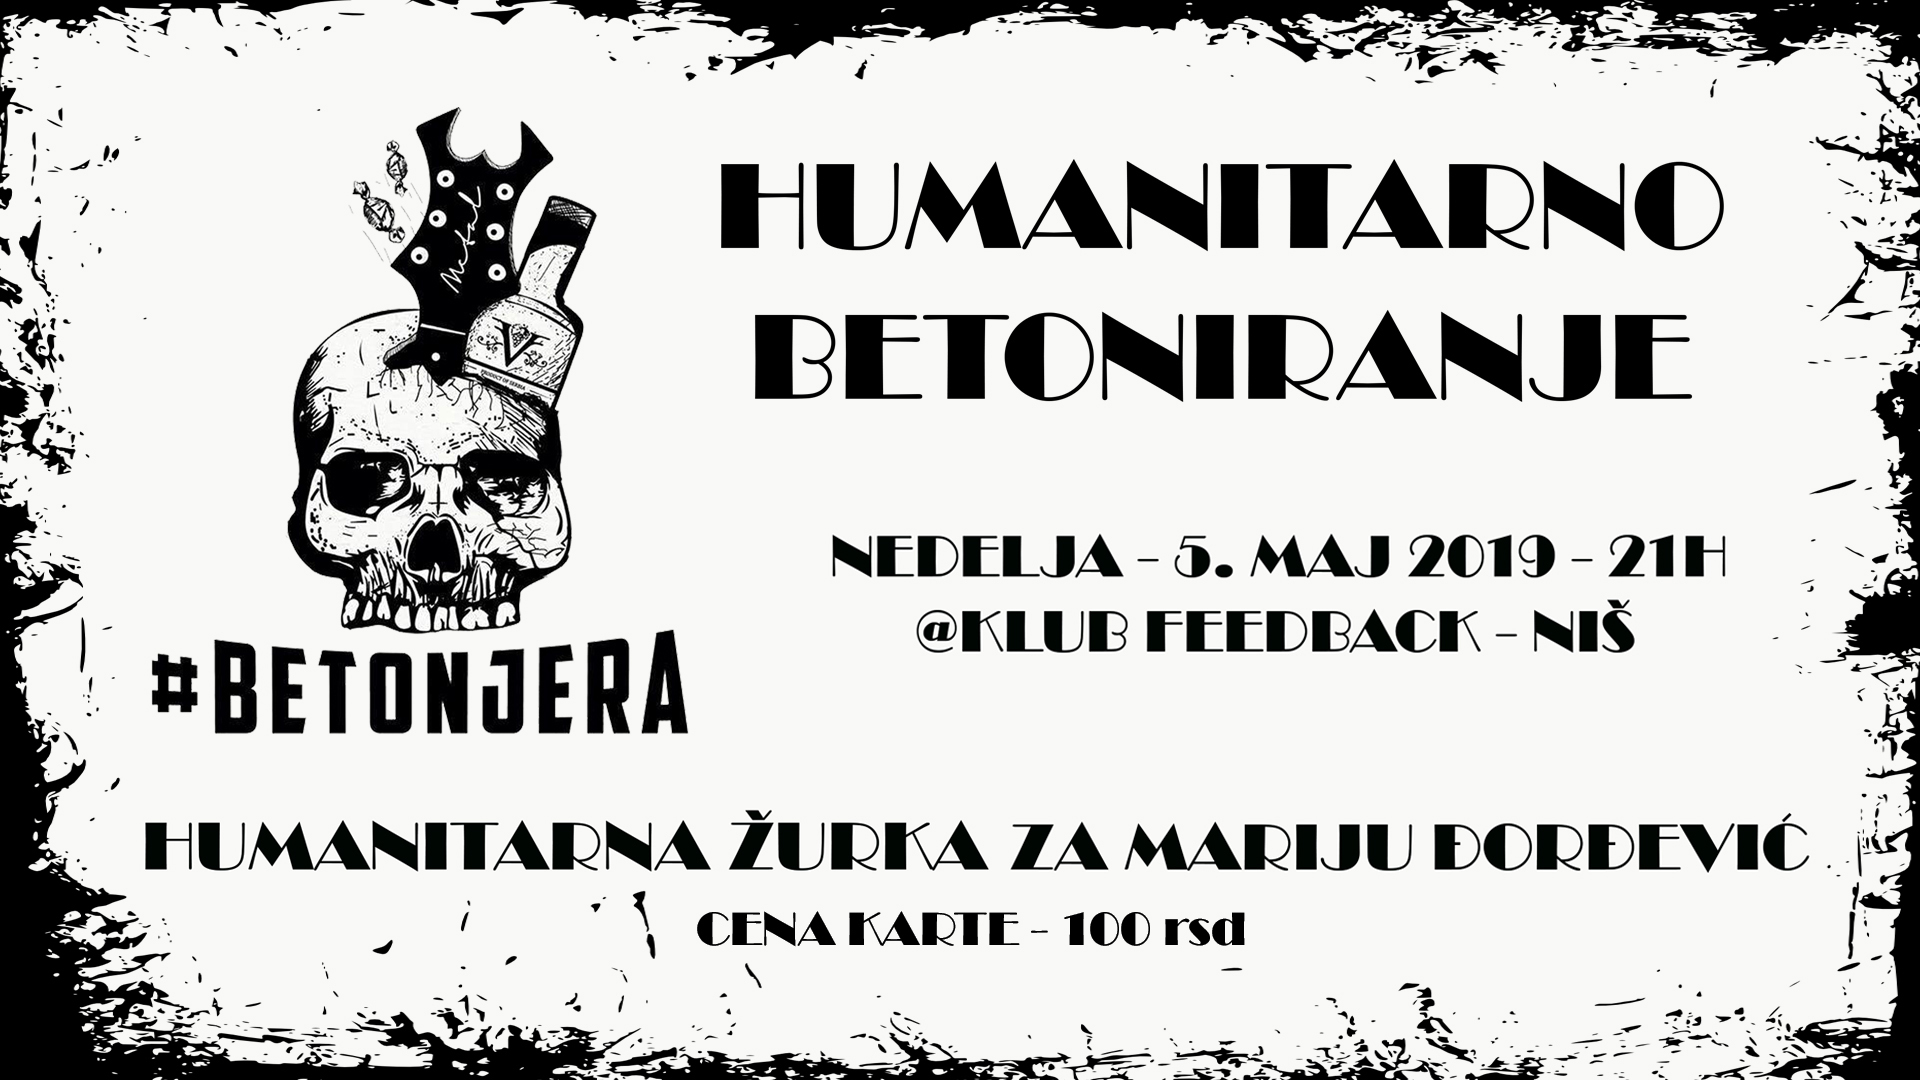 Humanitarno betoniranje fb event cover photo white